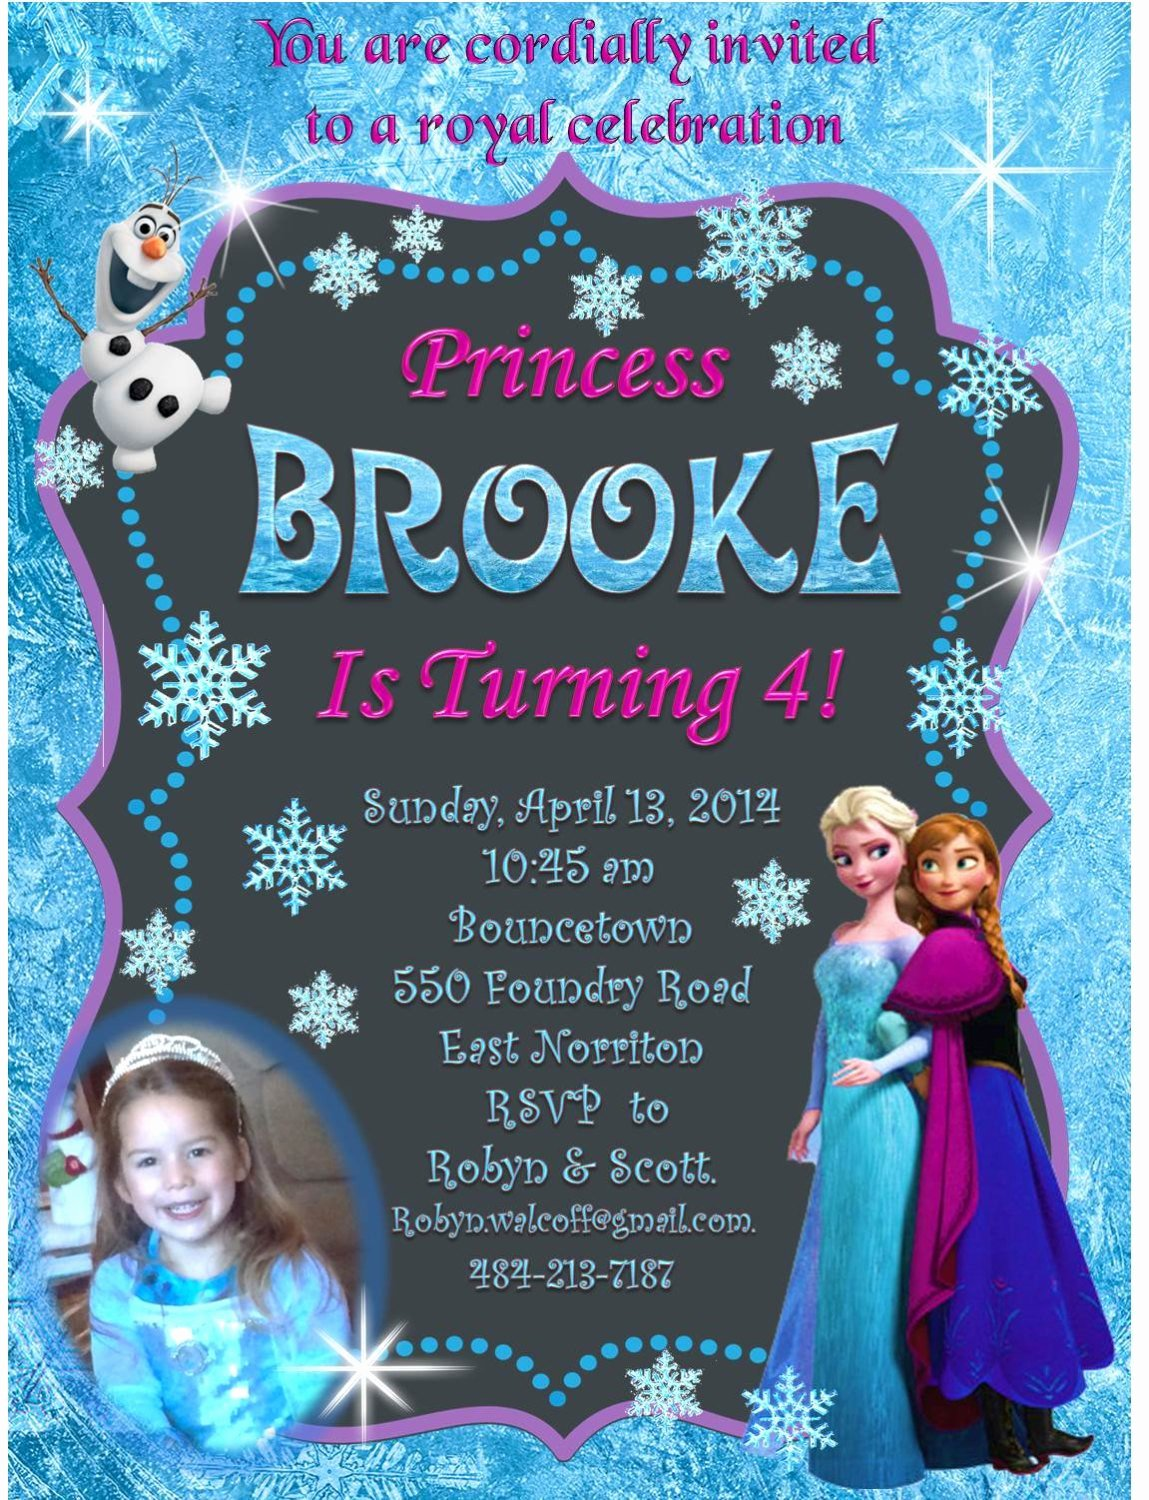 Personalized Frozen Birthday Invitations Elegant Frozen Invitation Disney Frozen Birthday Invitation – Bella Fashion Kidz